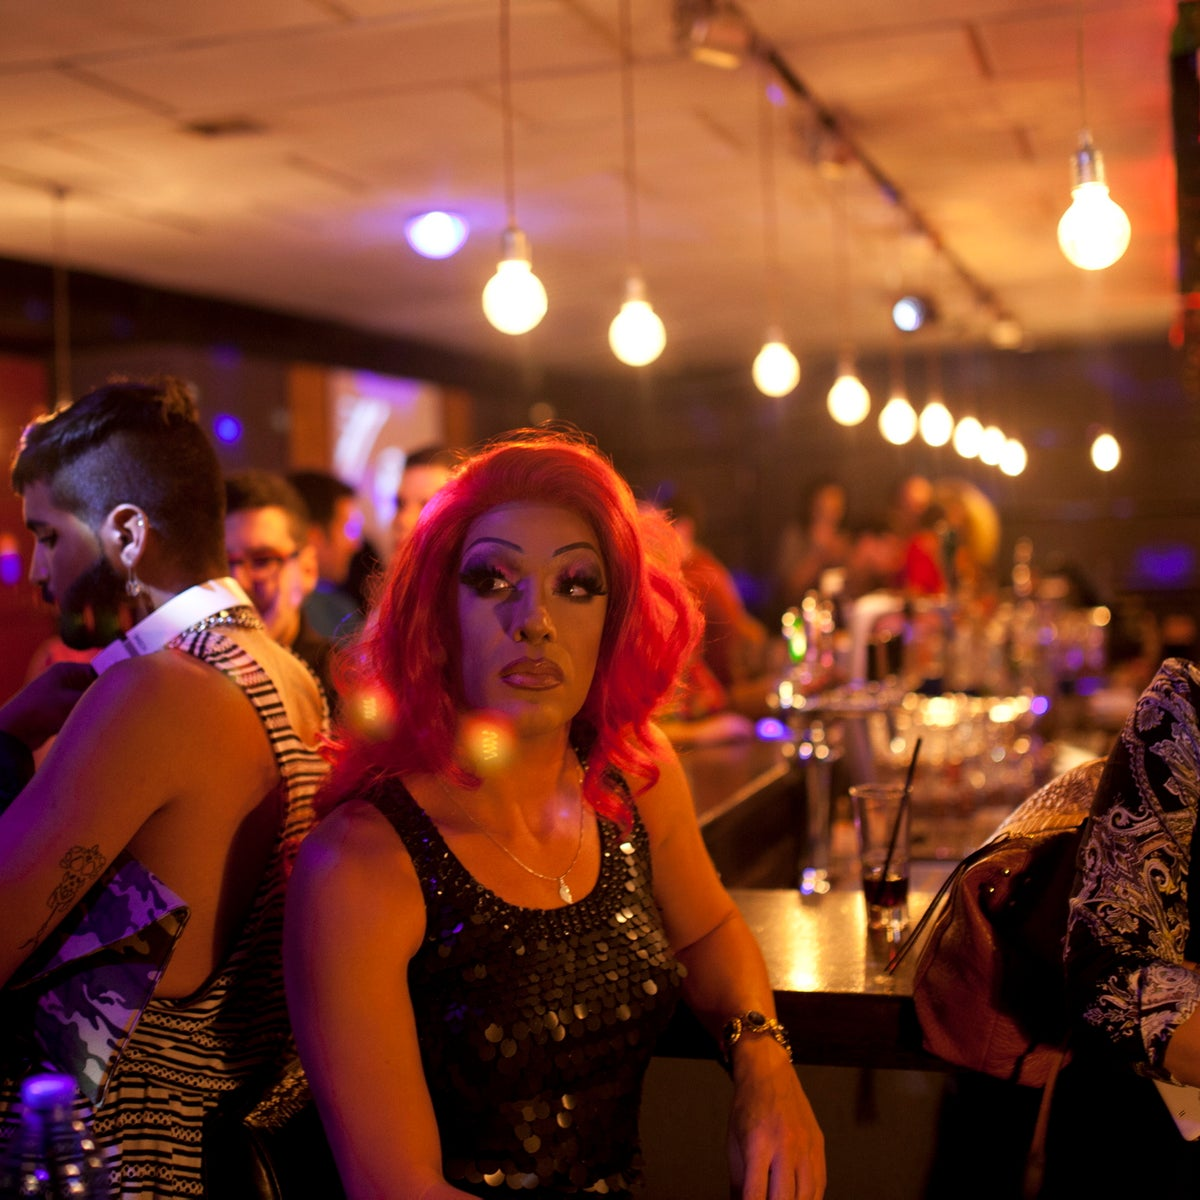 Partygoers at Tel Aviv's Evita club have a moment of silence in honor of the victims of the mass shooting at a gay club in Orlando, June 14, 2016.